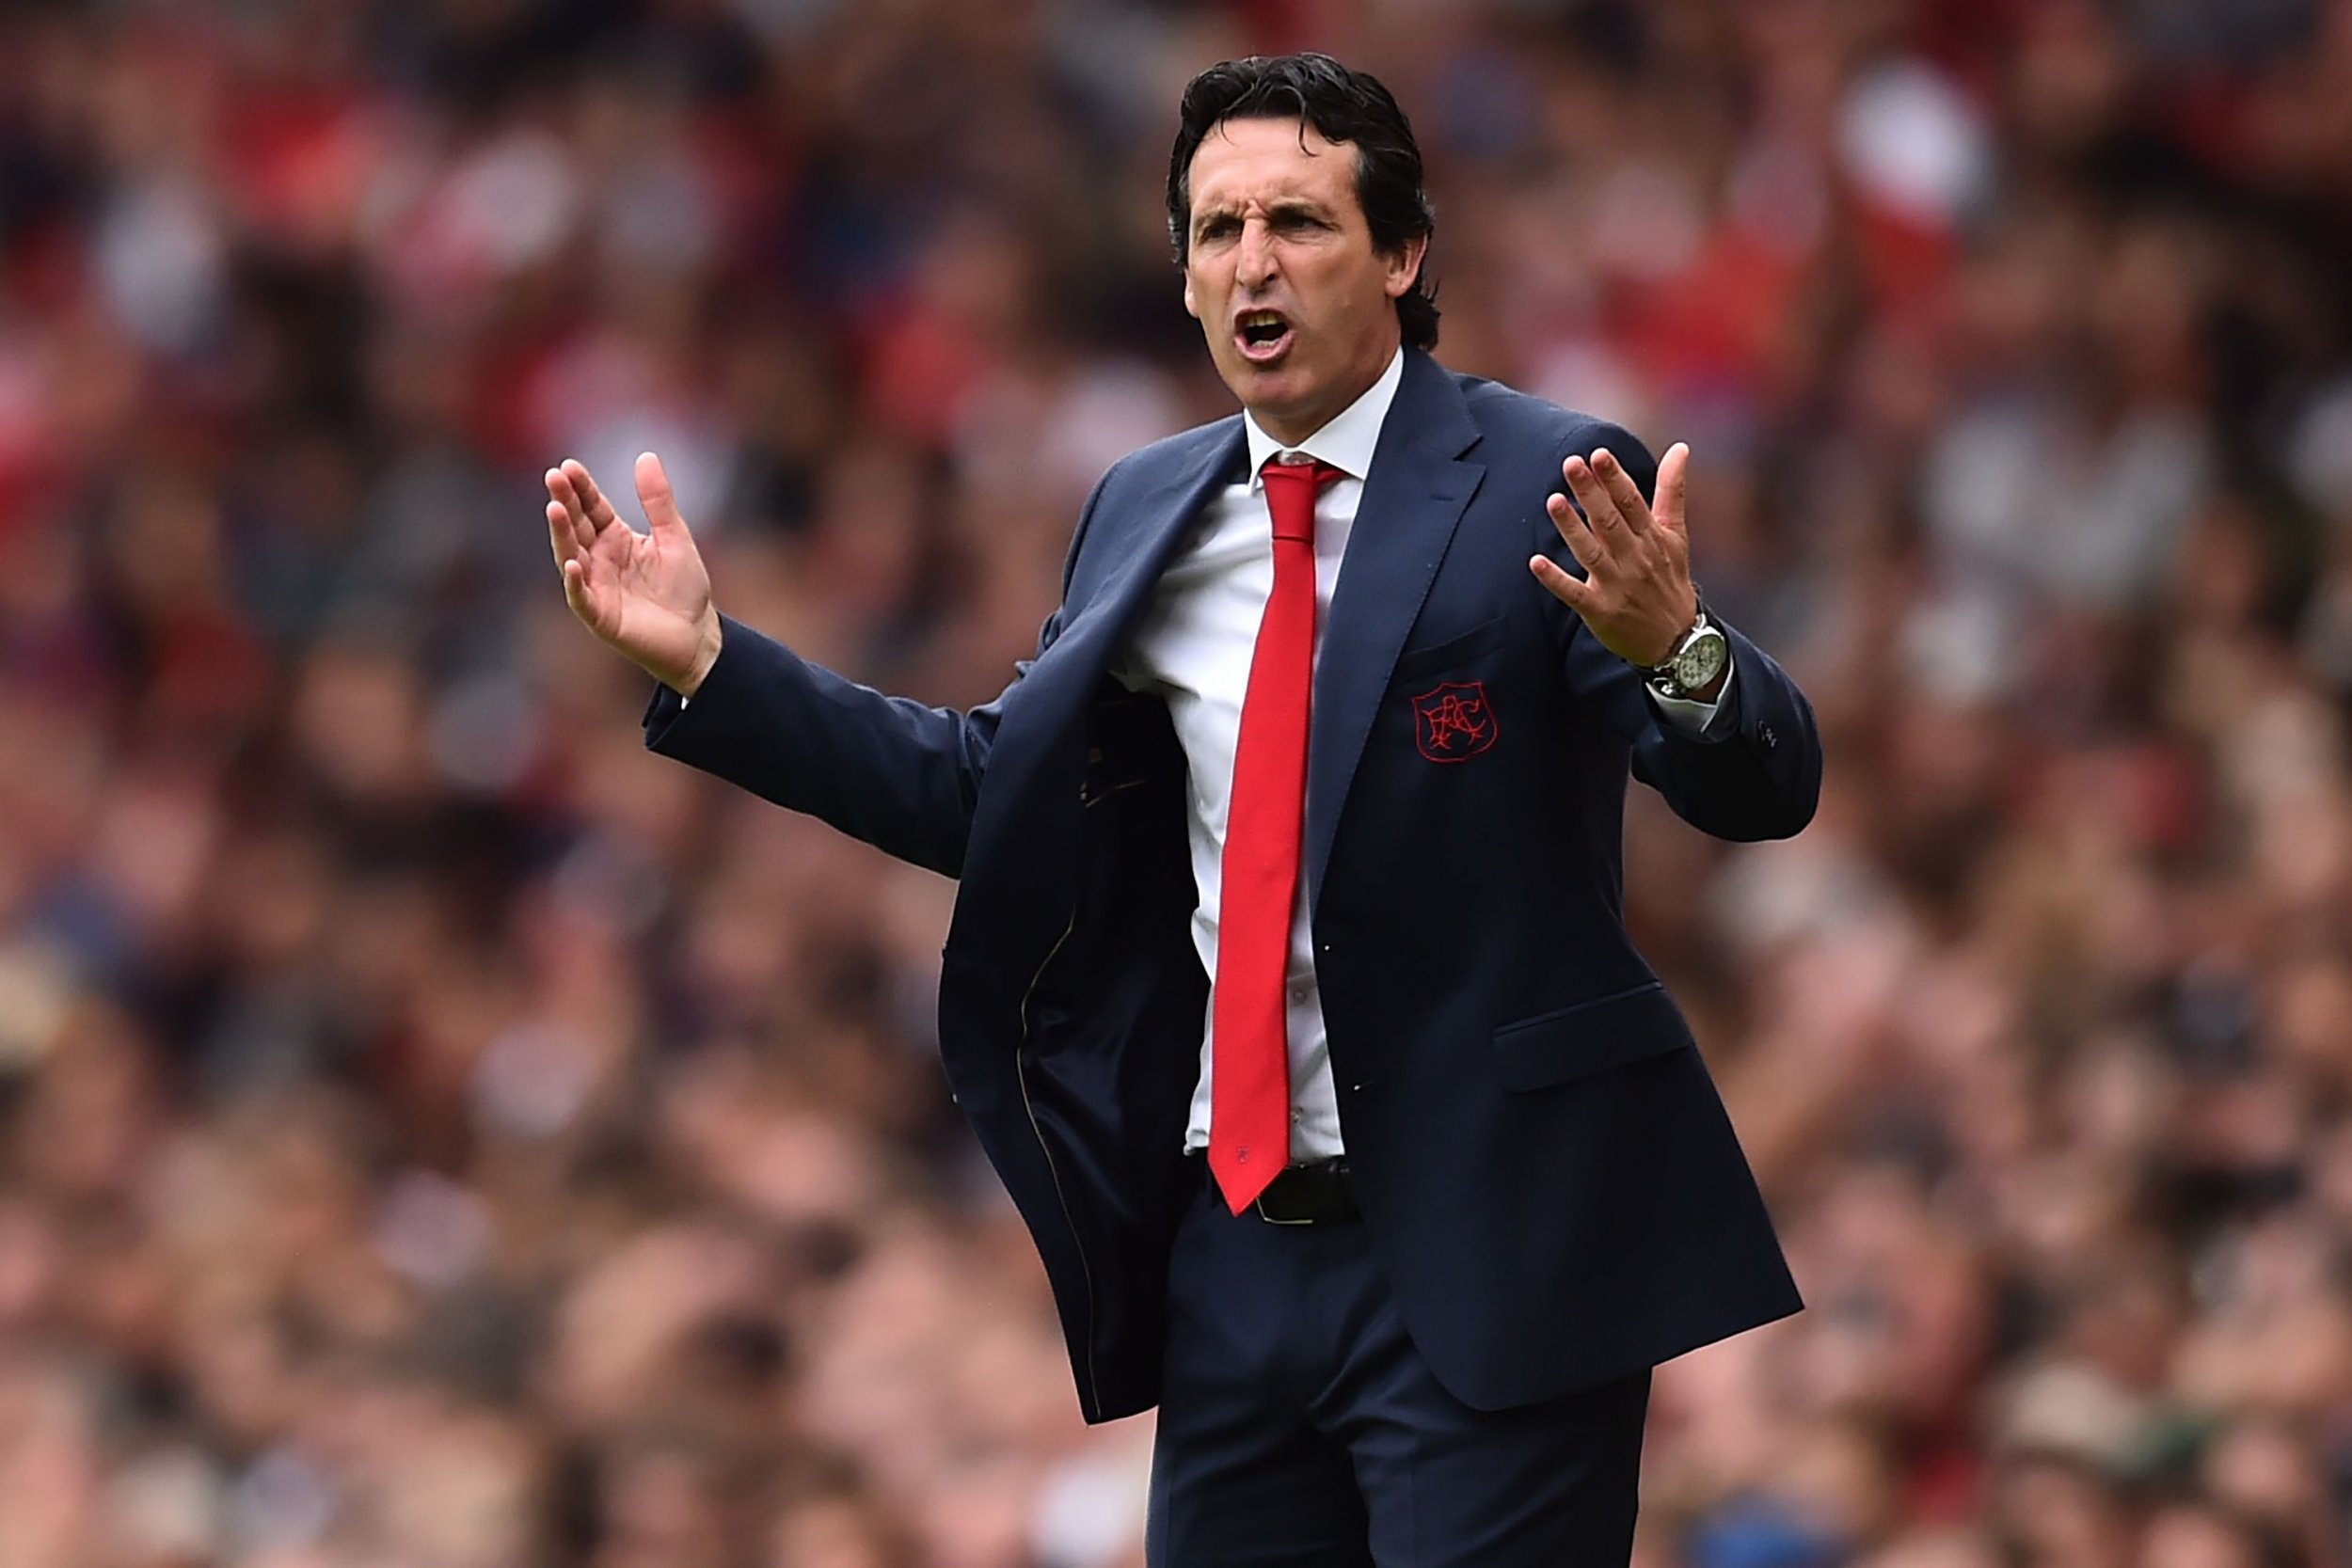 Gary Neville fires warning to Arsenal fans over Unai Emery after Manchester City defeat